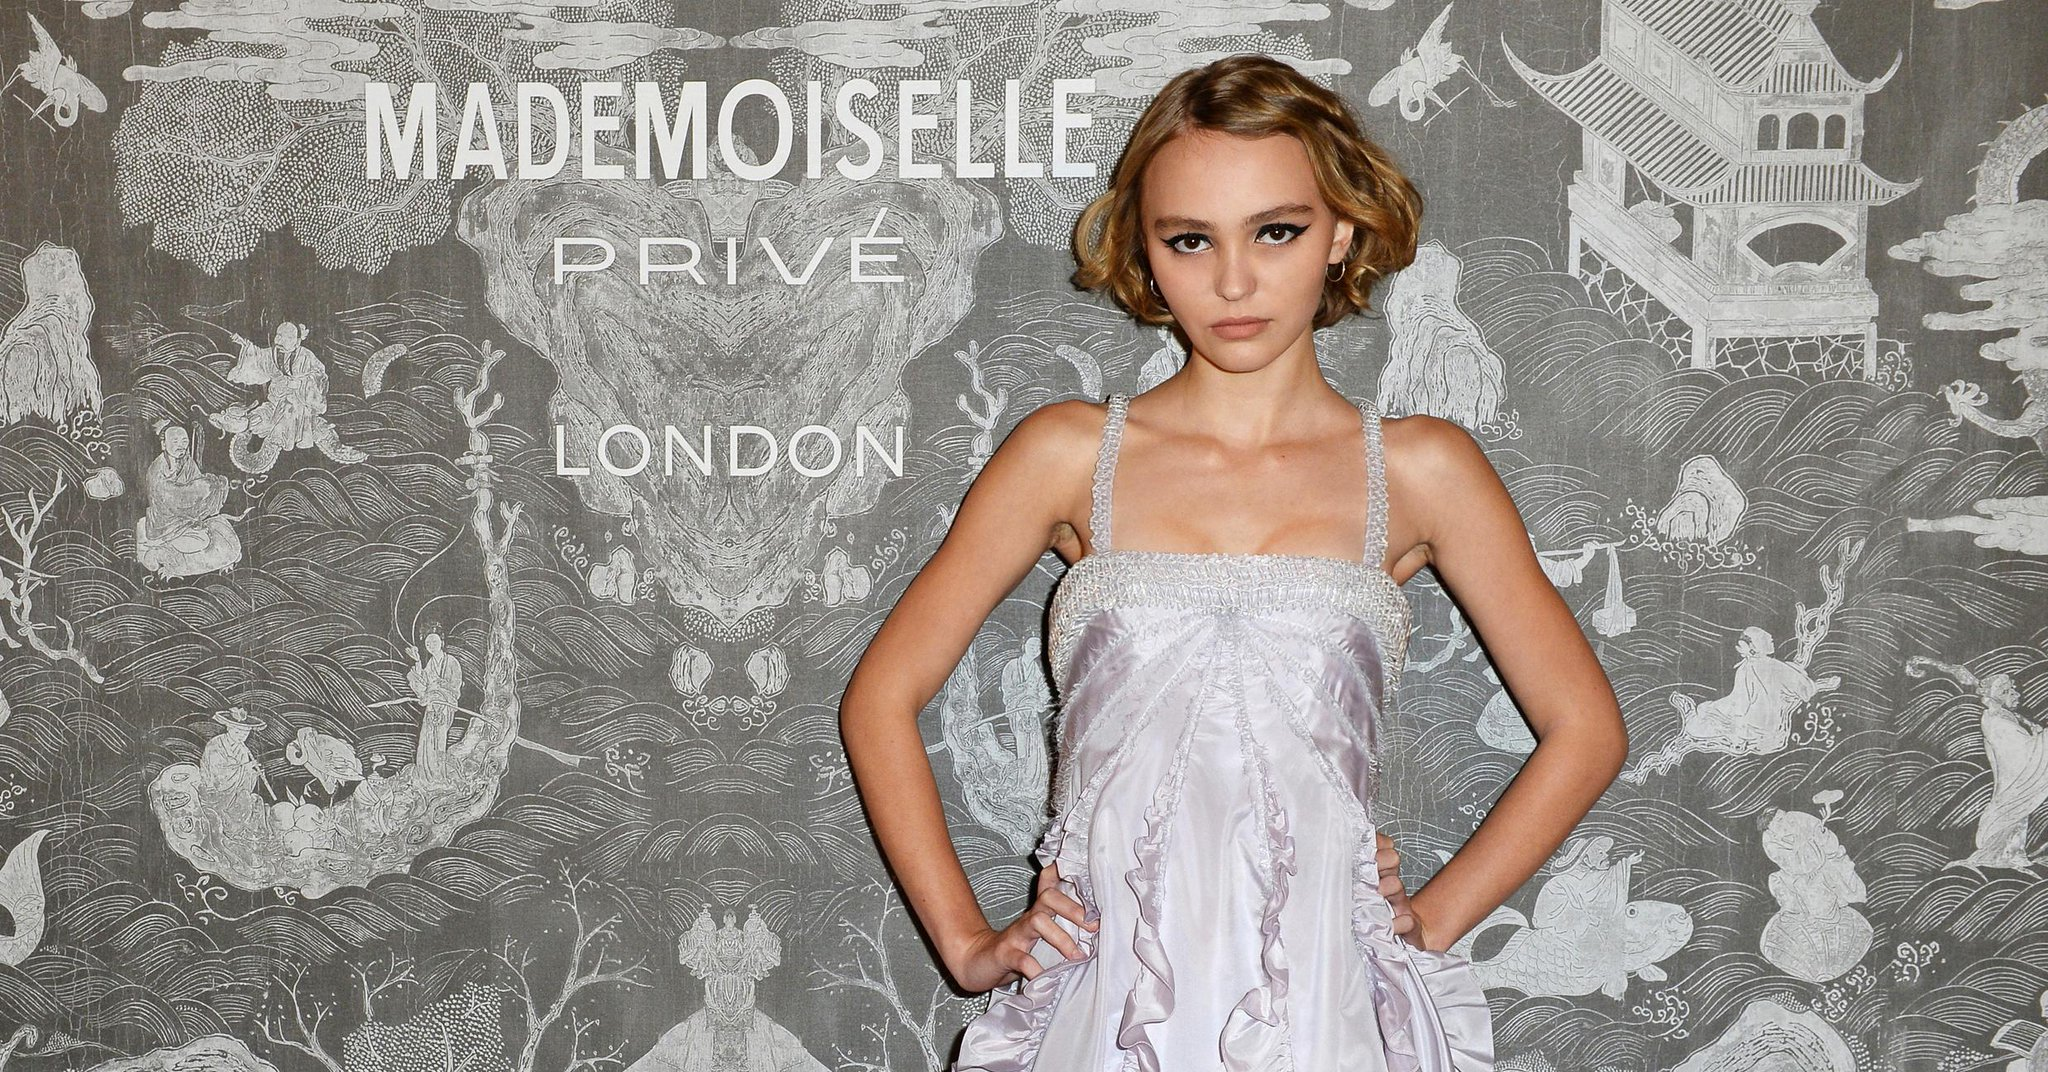 Lily-Rose Depp Shows How Fashion Girls Do #Homecoming Dresses: http://t.co/DMP1N57JX3 http://t.co/mbmt2Lfgeq